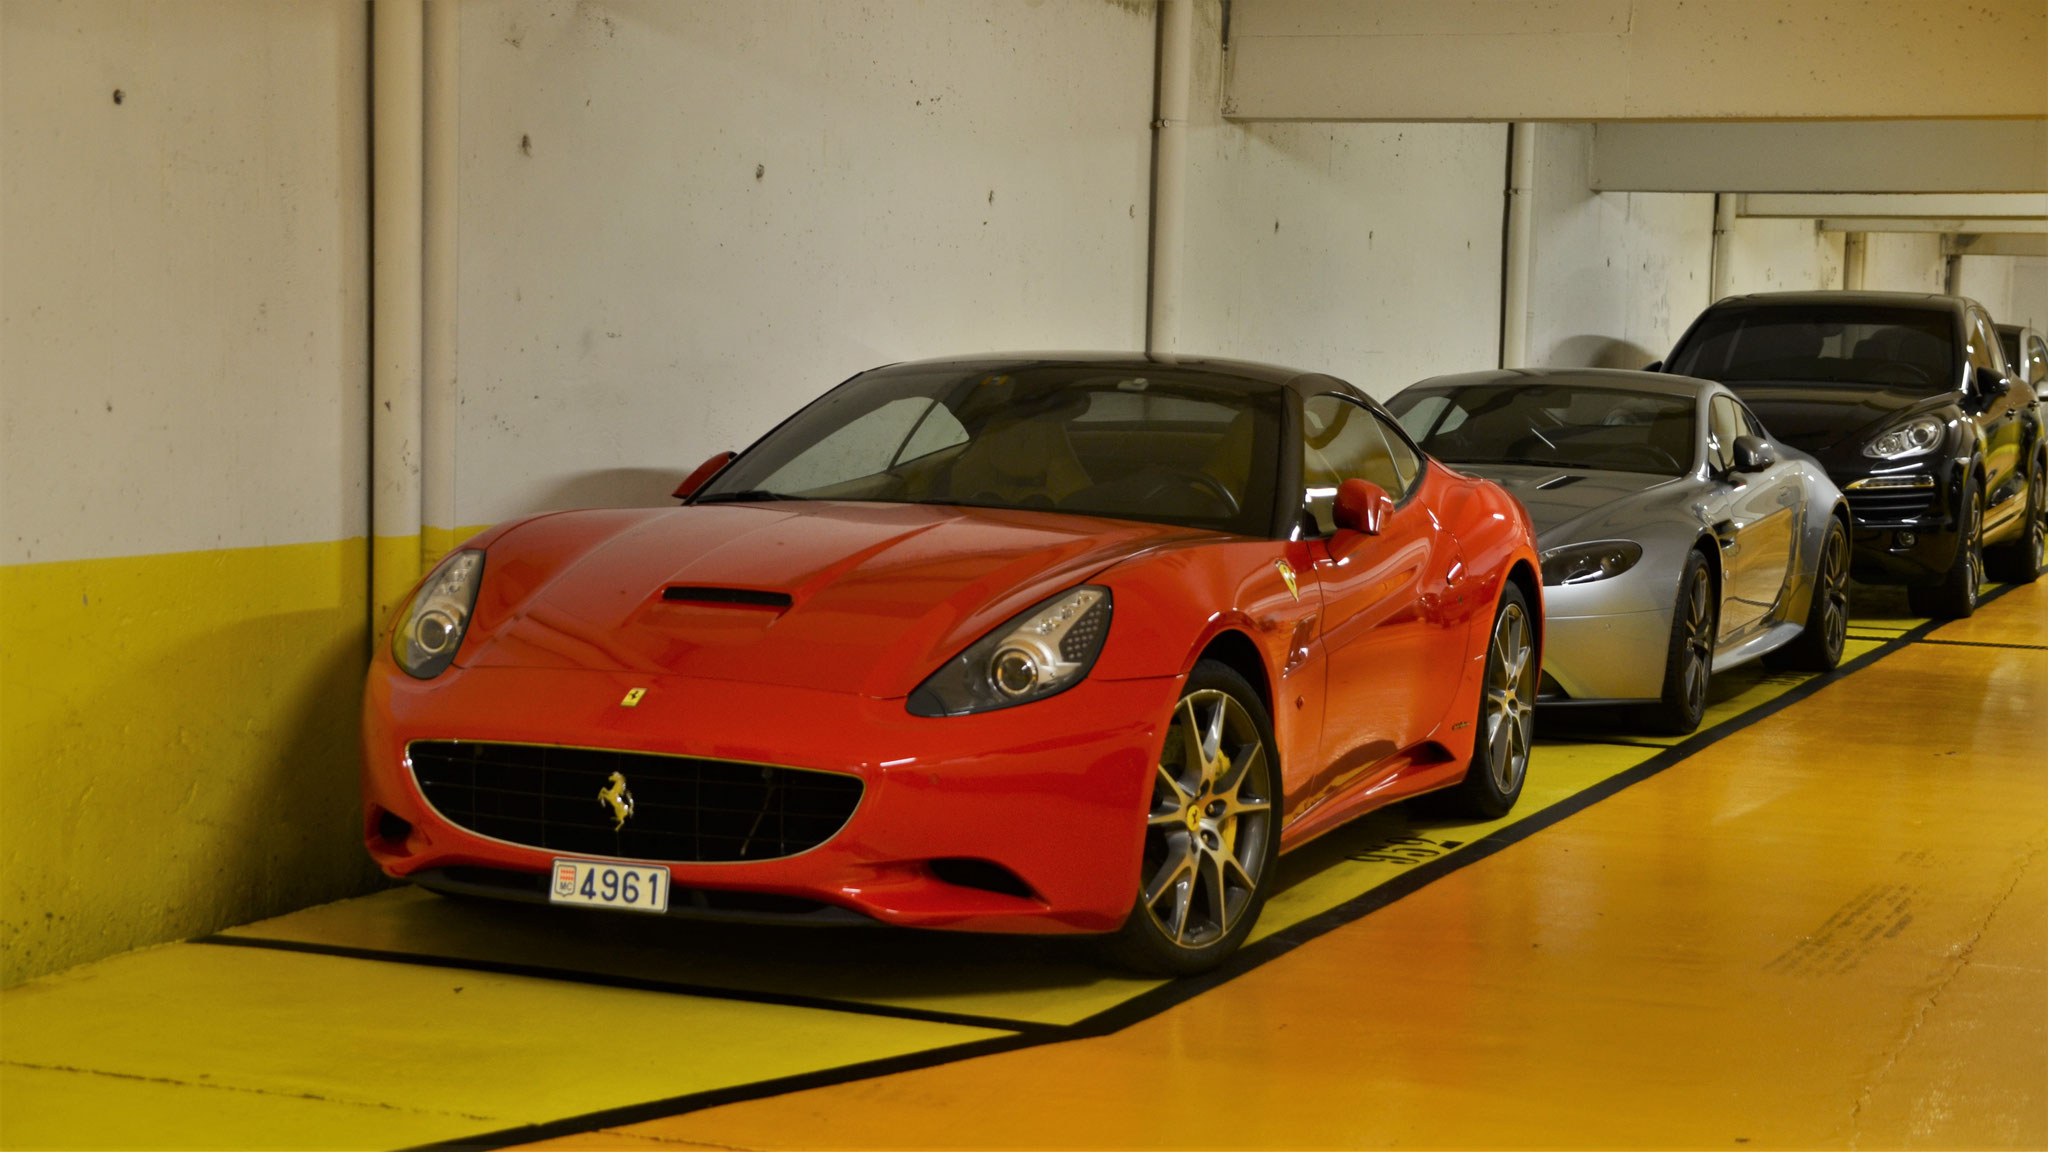 Ferrari California - 4961 (MC)